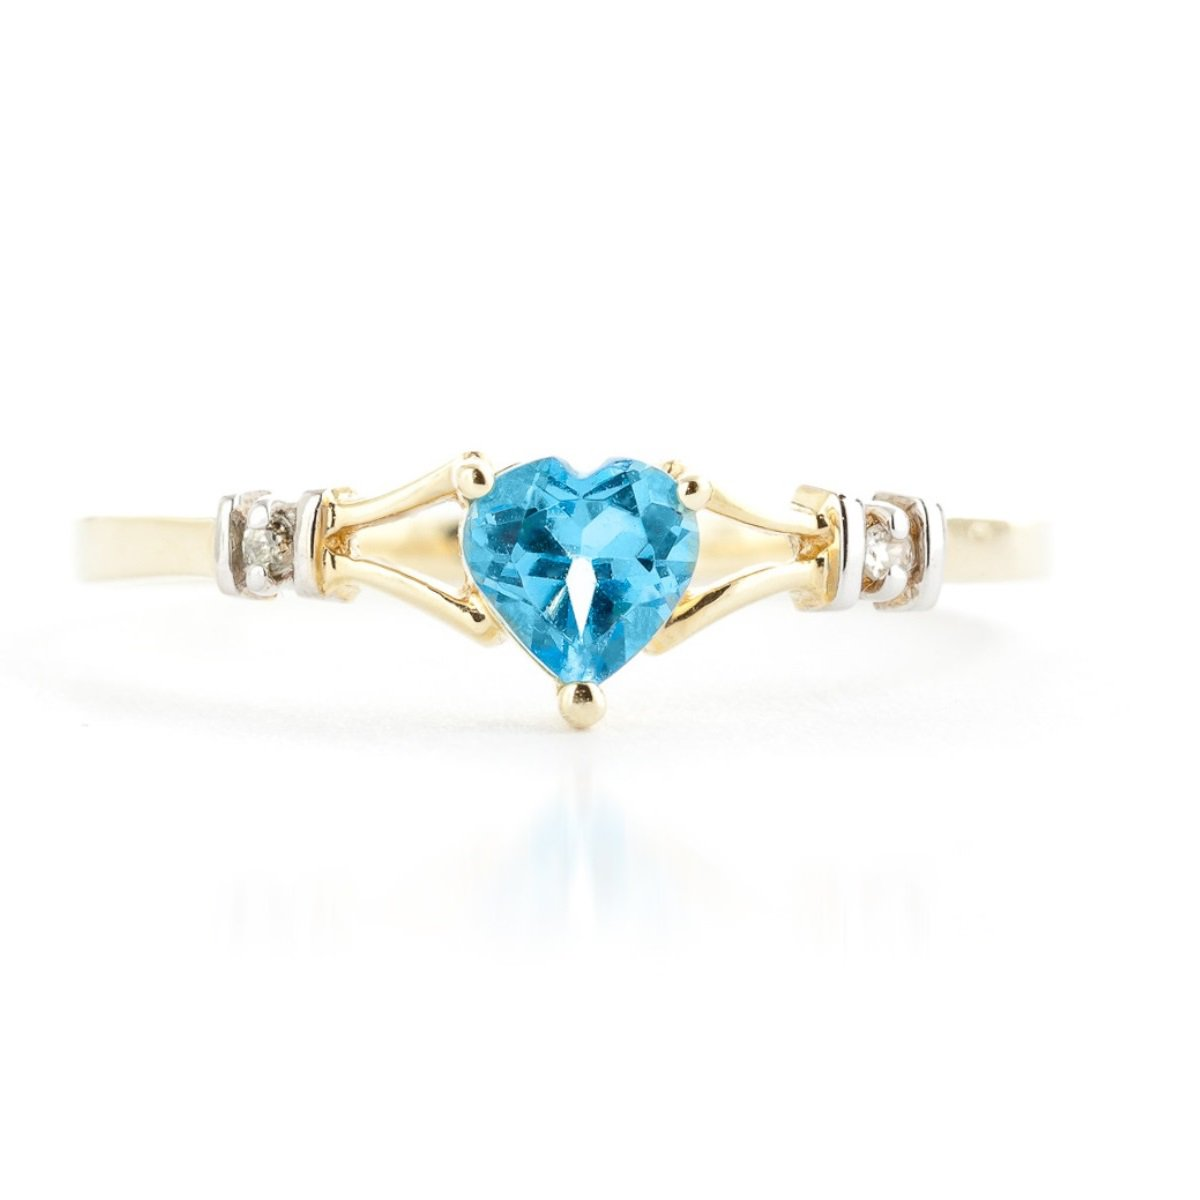 Blue Topaz Heart Diamond Ring Solid 14k Yellow Gold 1277-Y